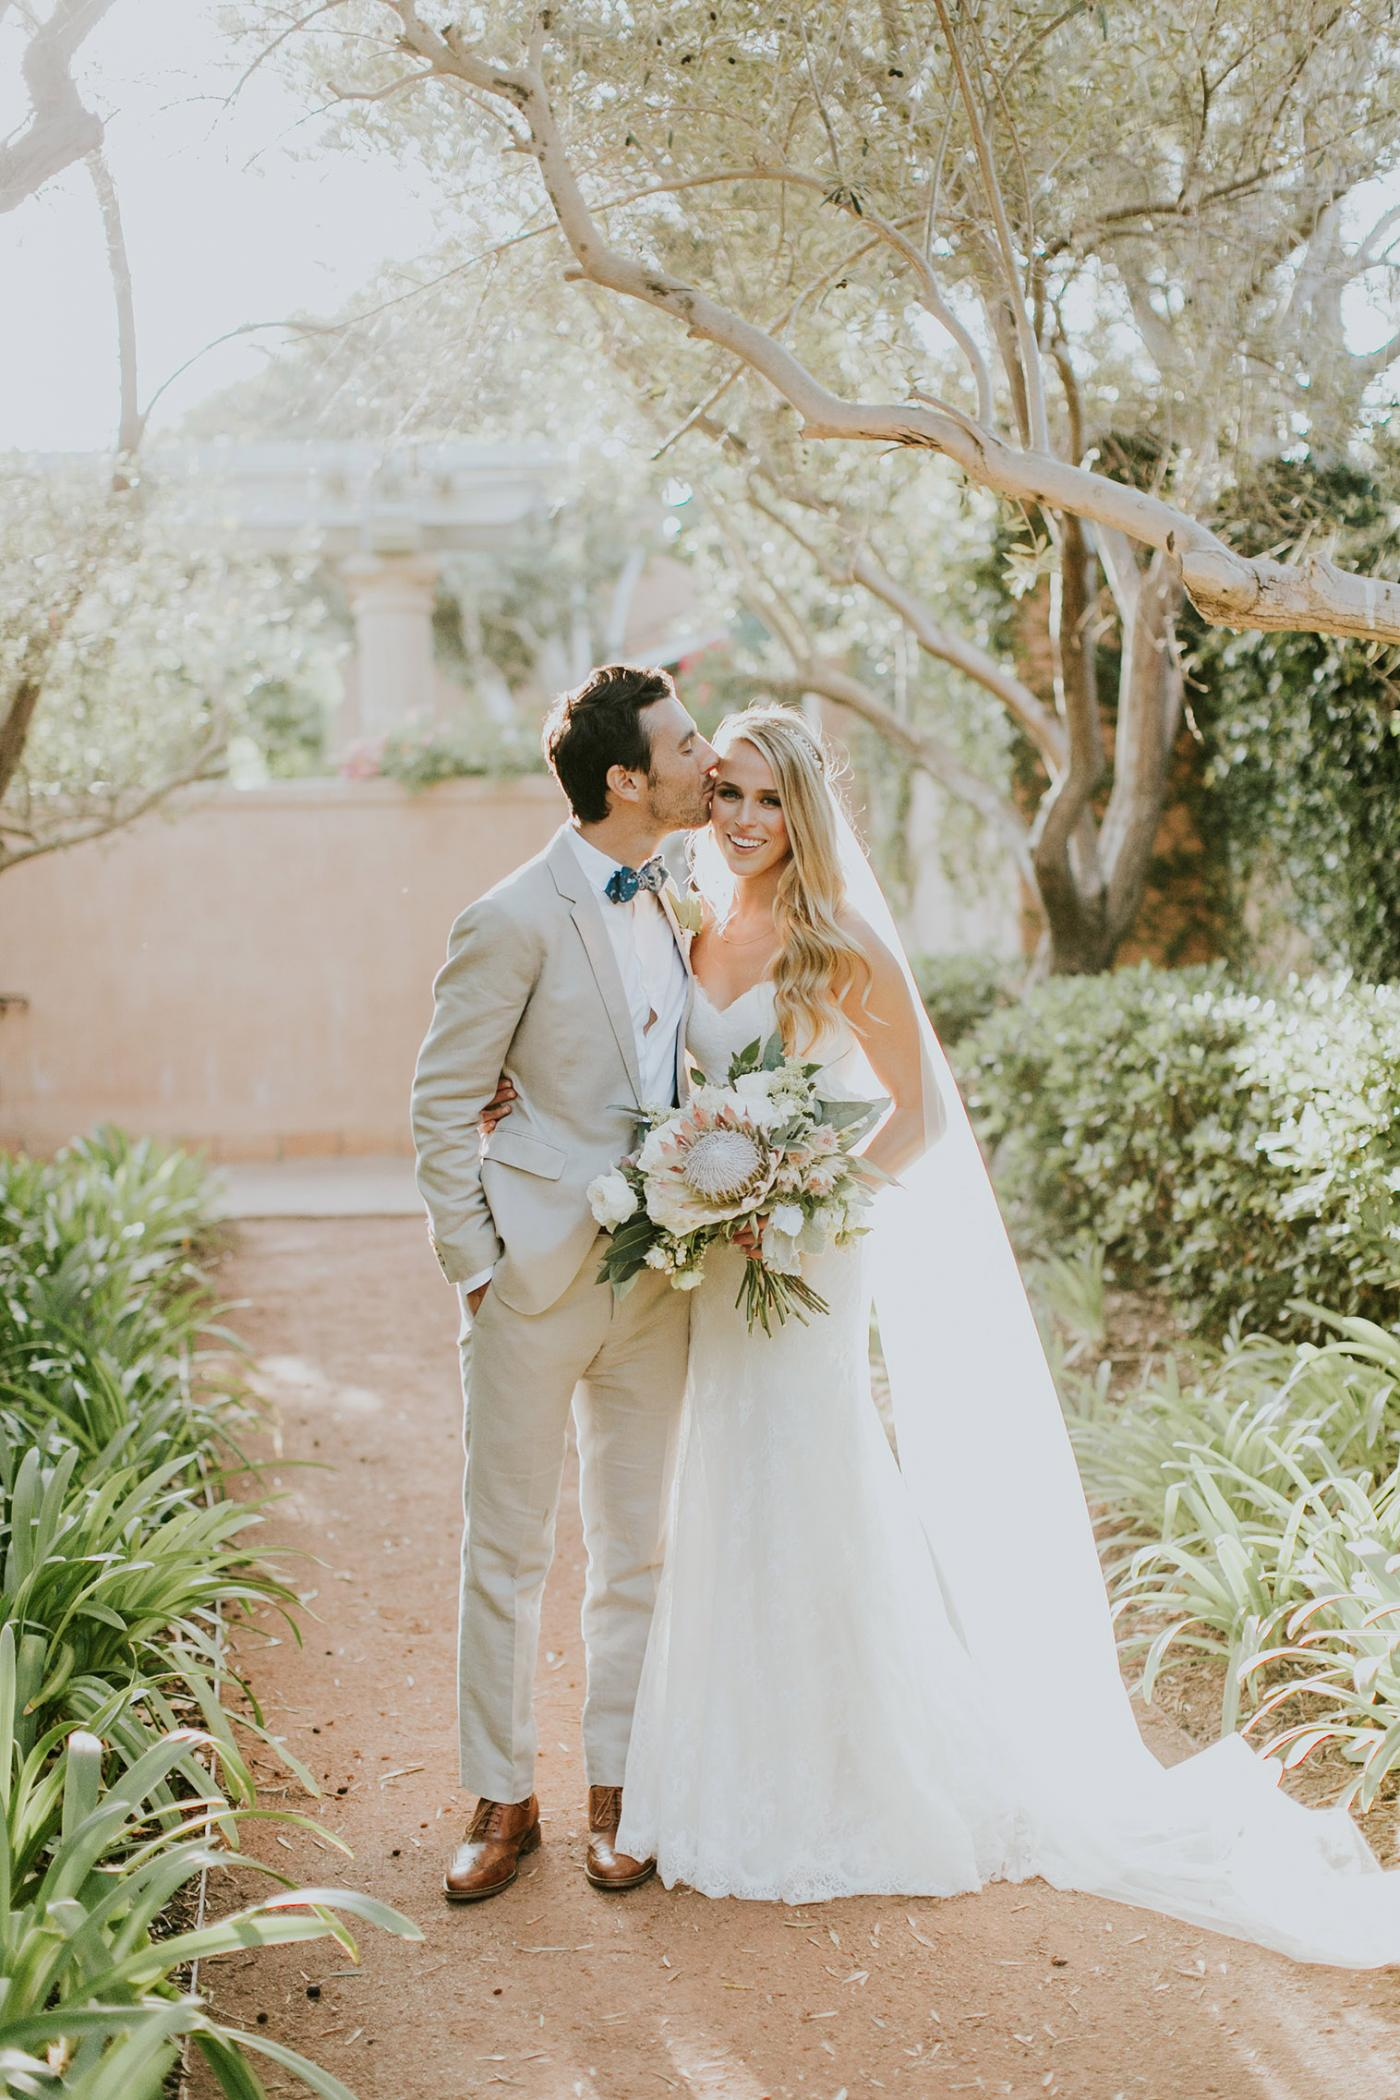 See How One Of Our Own Team Members Styles Her Wedding